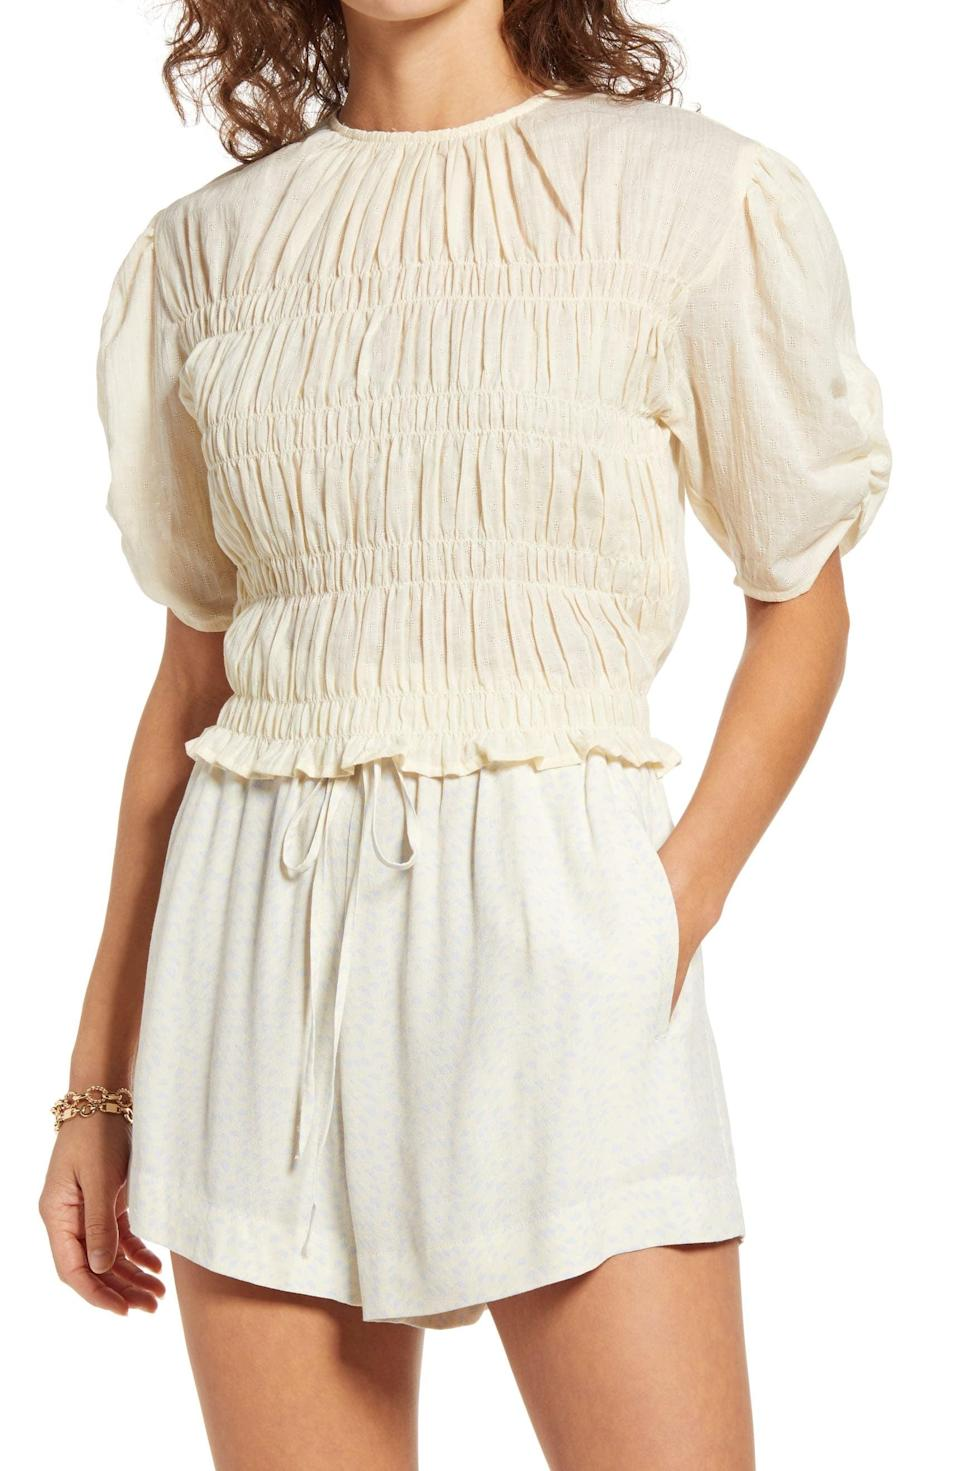 <p>The smocked panels of this <span>Open Edit Smocked Short Sleeve Top</span> ($33, originally $55) add a touch of elegance, while the puff sleeves bring drama in the chicest way.</p>